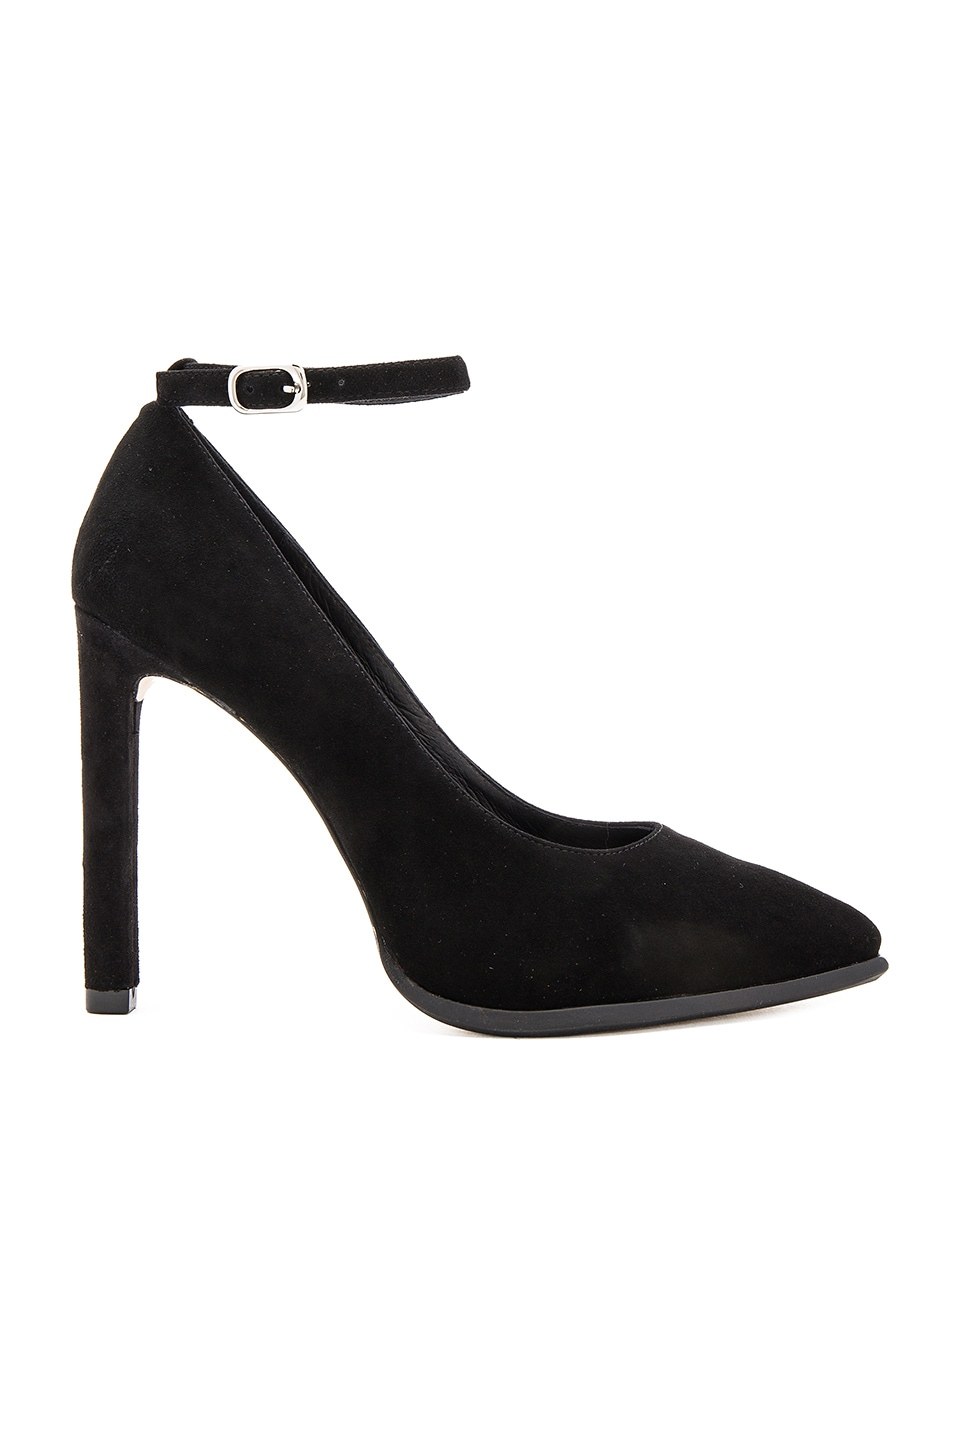 Lentine Heels by Jeffrey Campbell